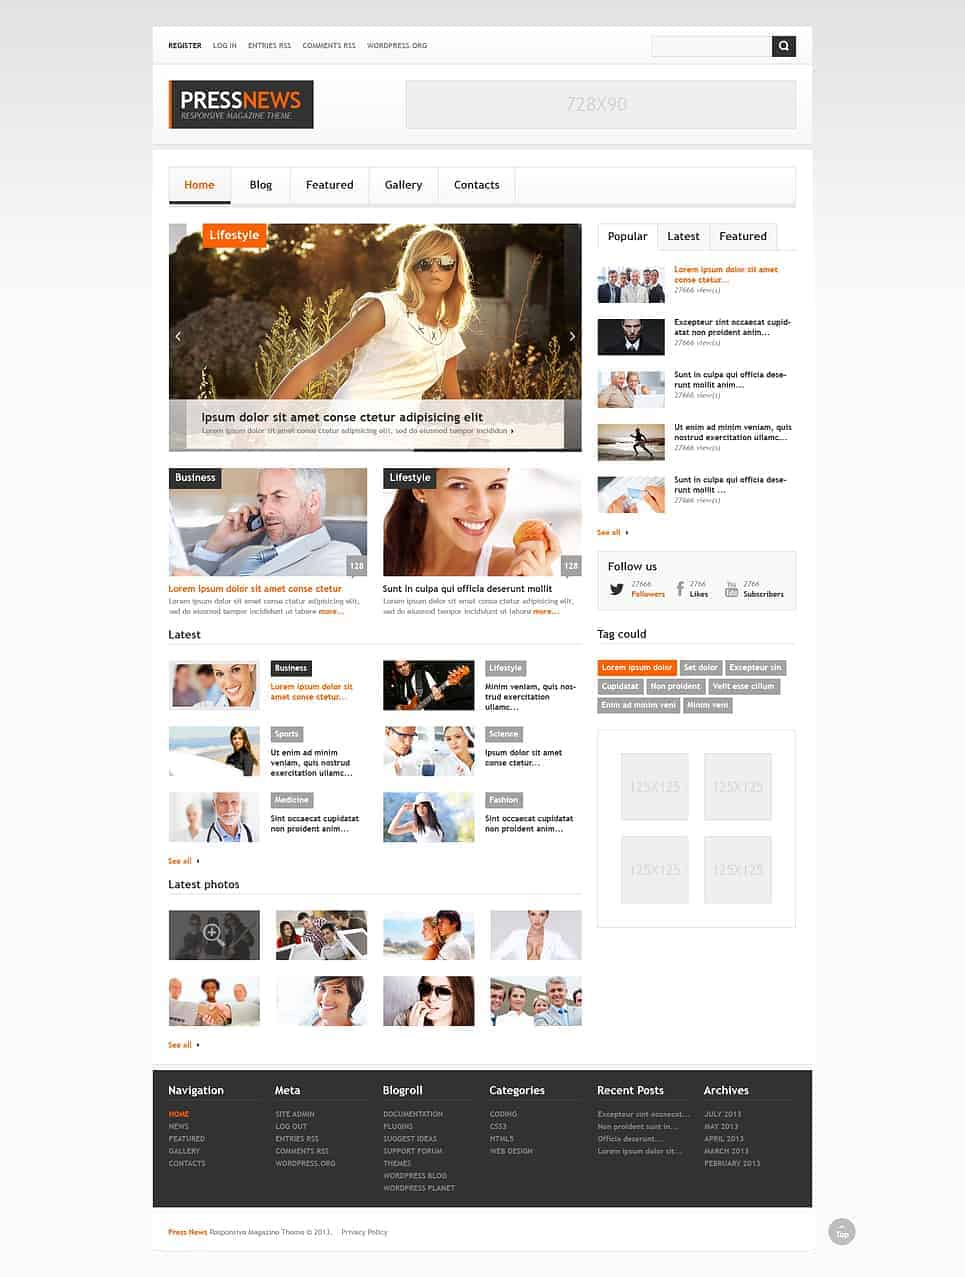 Pressnews theme by templatemonster